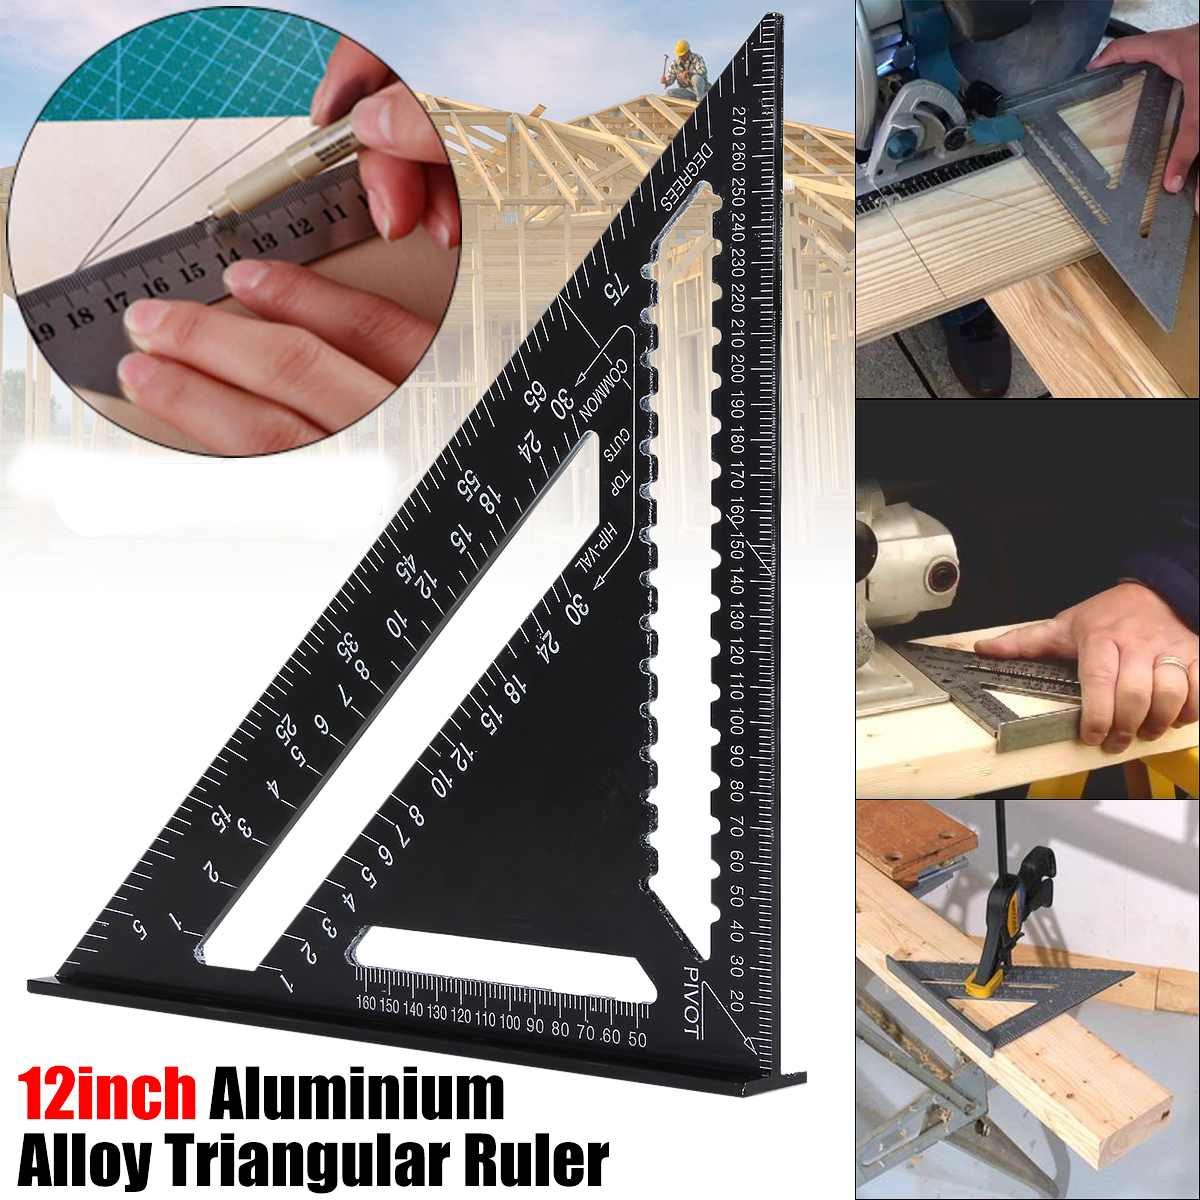 12inch Speed Square Metric Aluminum Alloy Triangle Ruler Squares for Measuring Tool Metric Angle Protractor Woodworking Tools-in Gauges from Tools